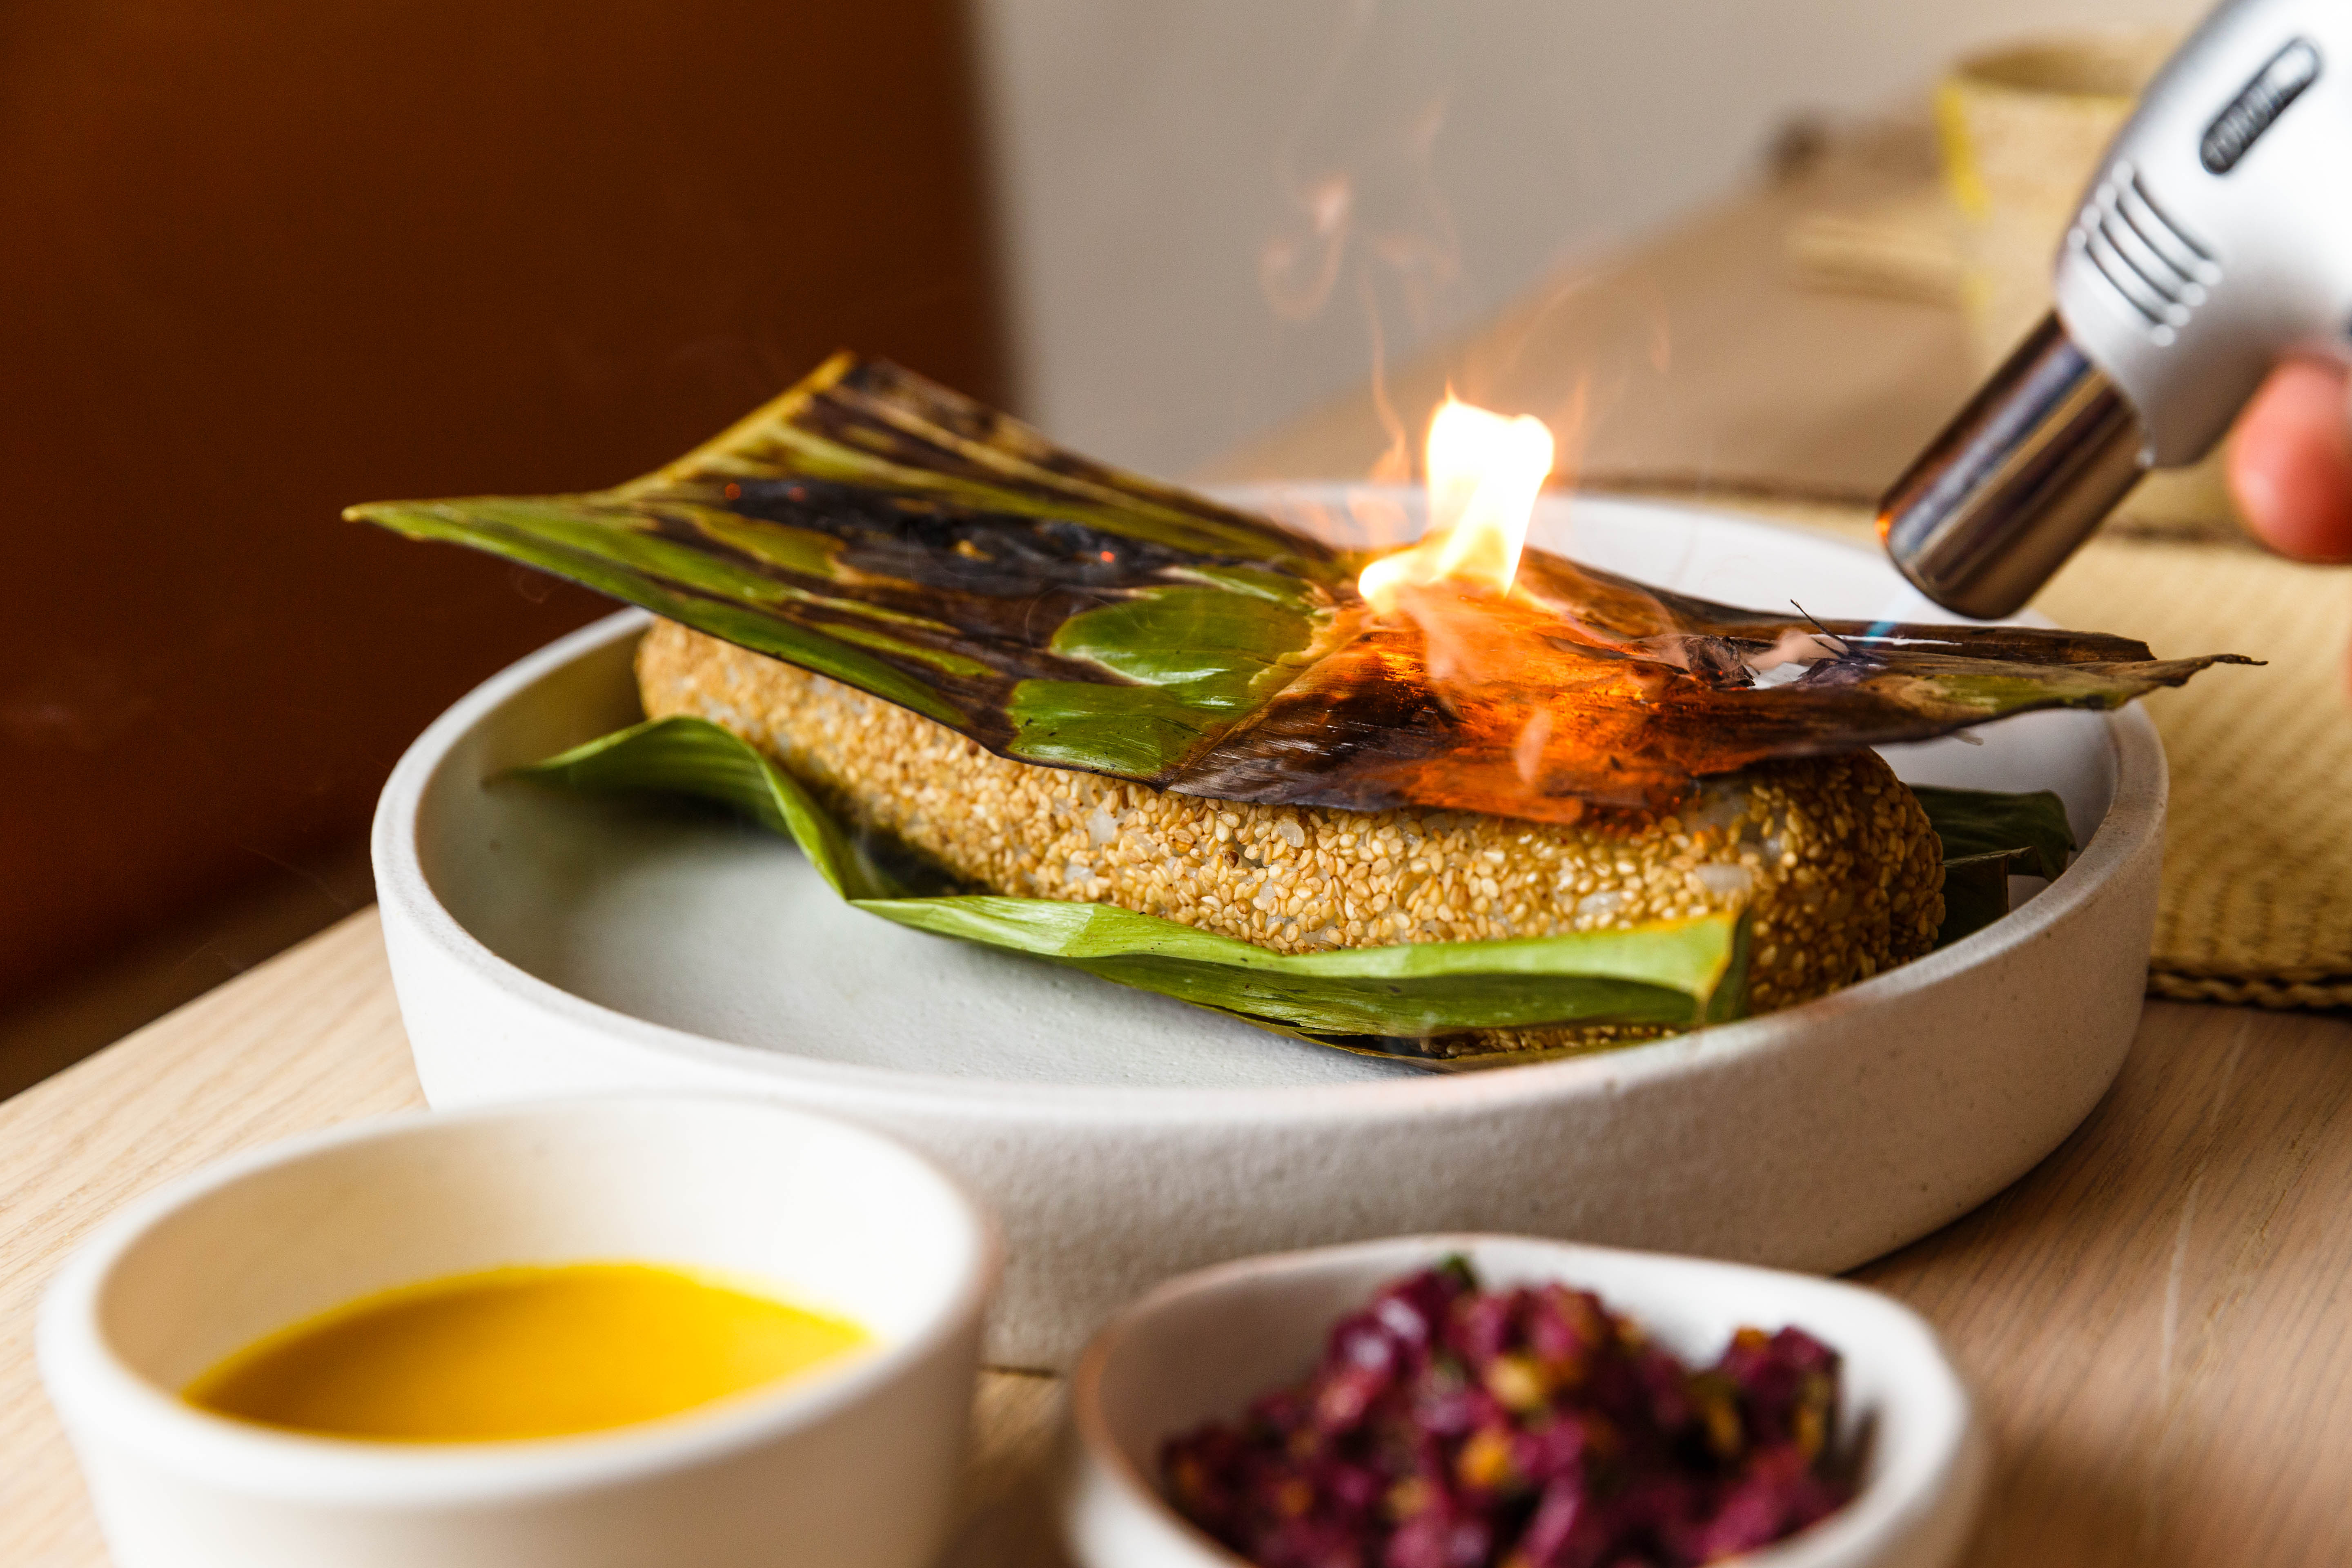 A torch lighting up a green banana leaf placed on top of a burrito-like roll